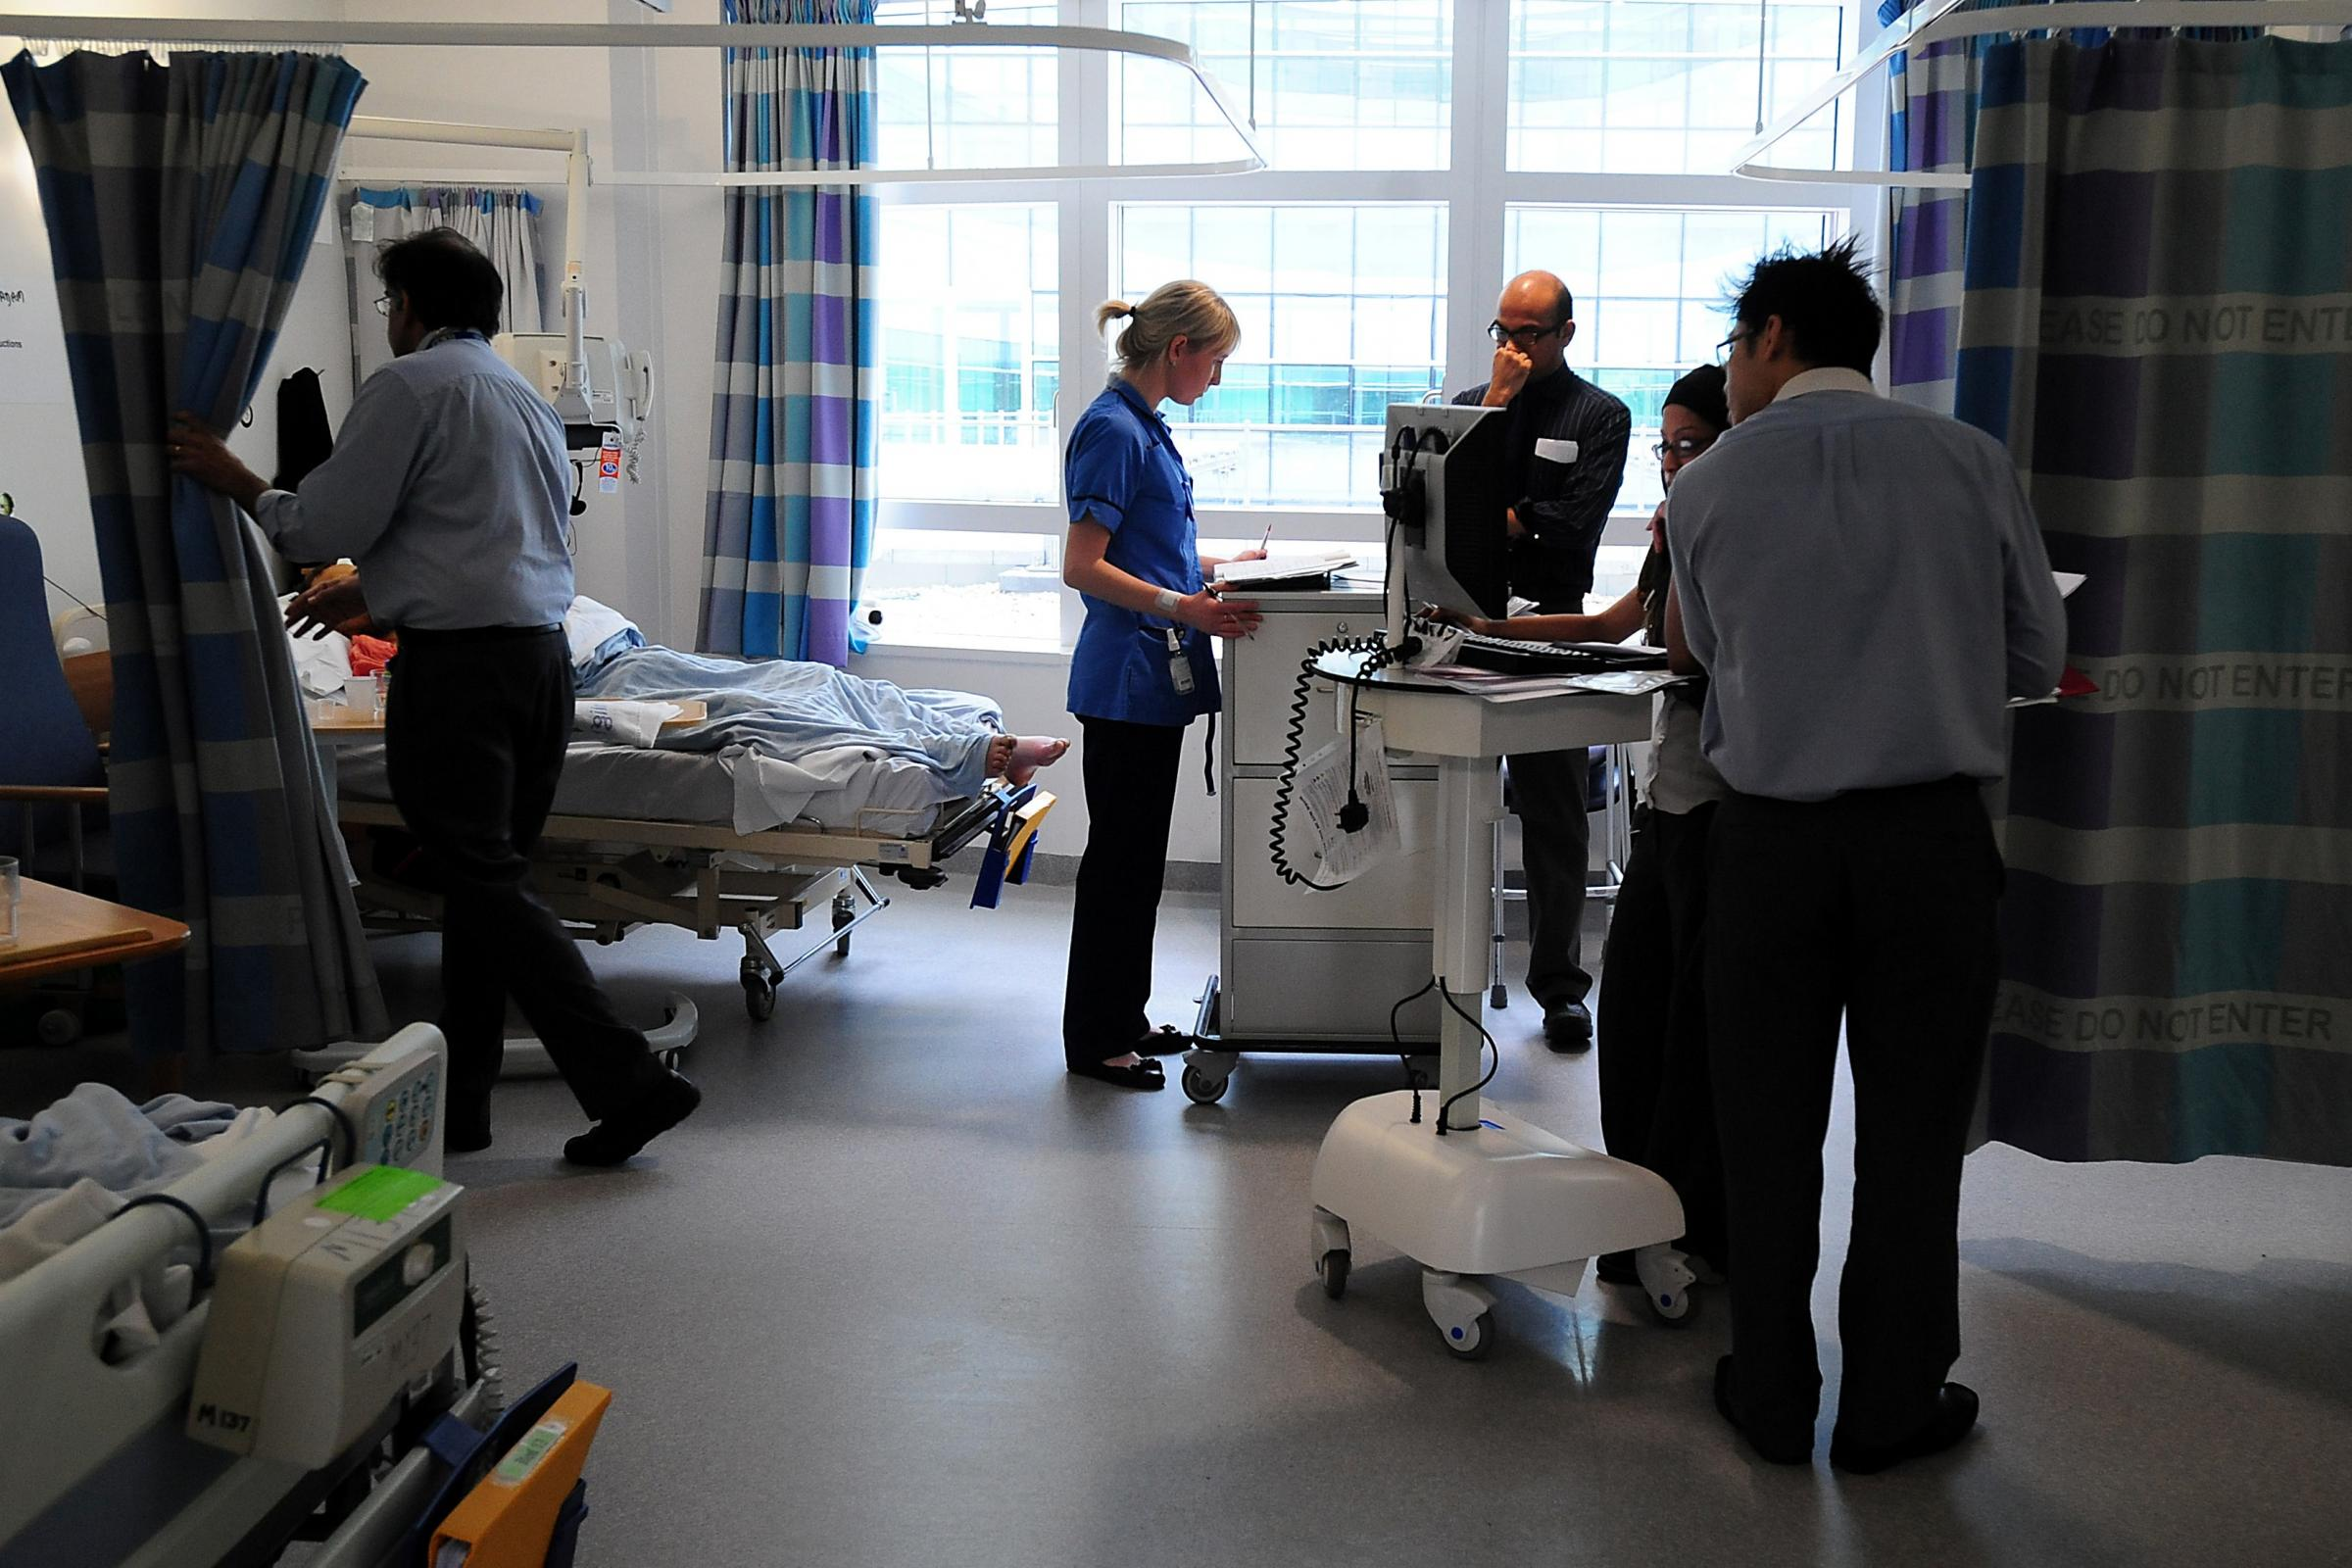 Staff in a hospital ward